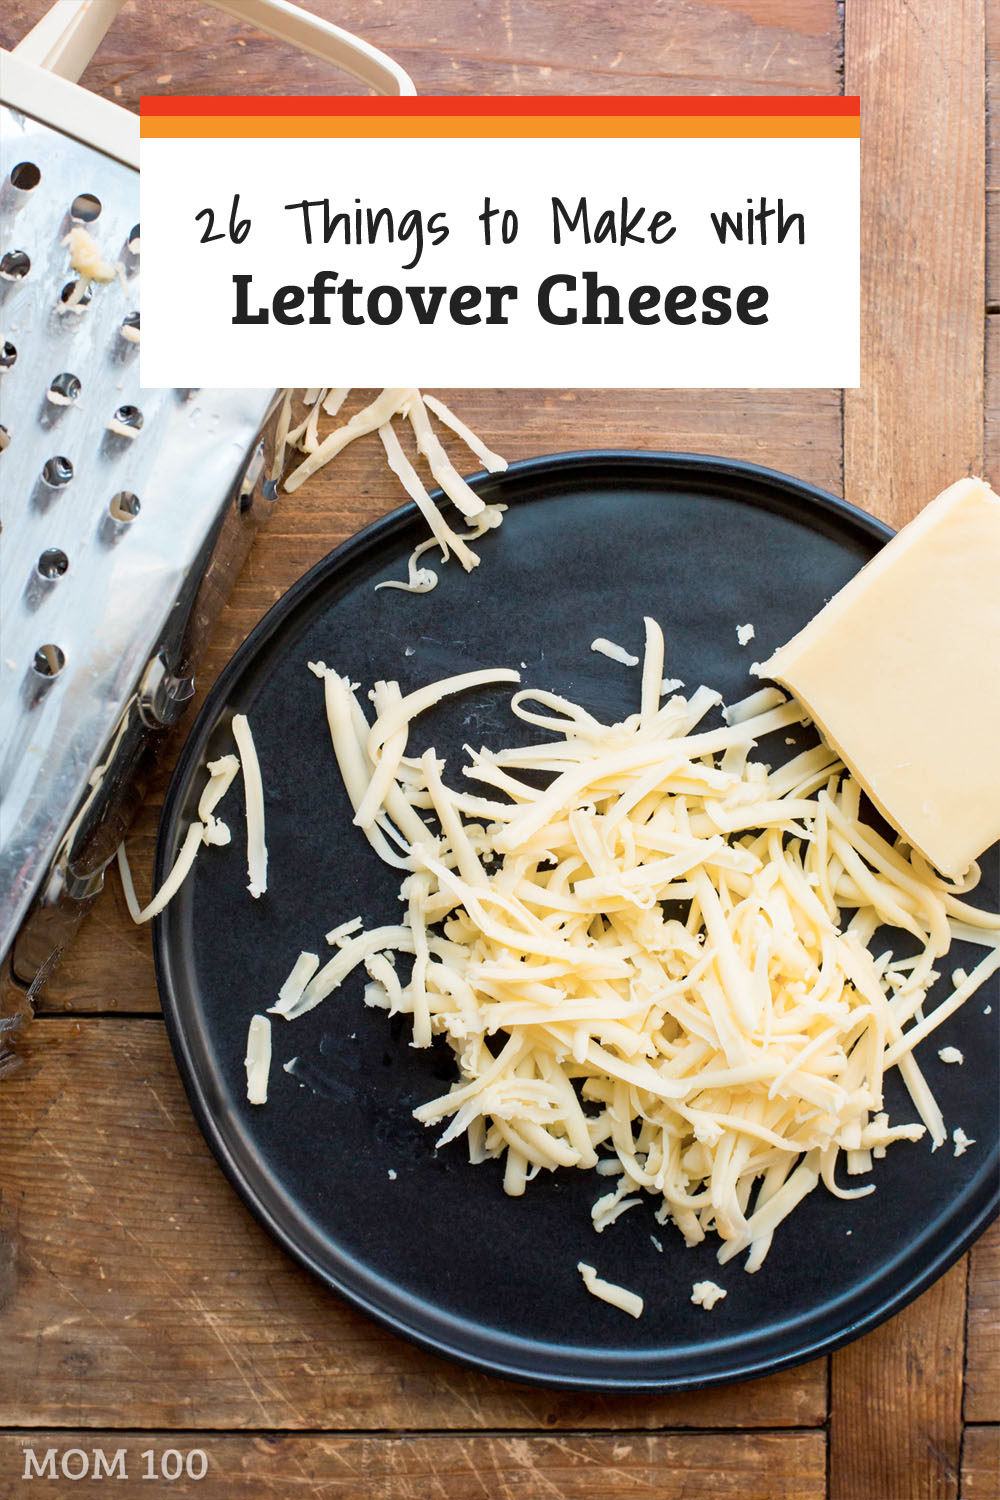 26 Things to Make with Leftover Cheese: If you have leftover cheeses of all kinds, these recipes will help you put them to fabulous use. #leftovers #cheese